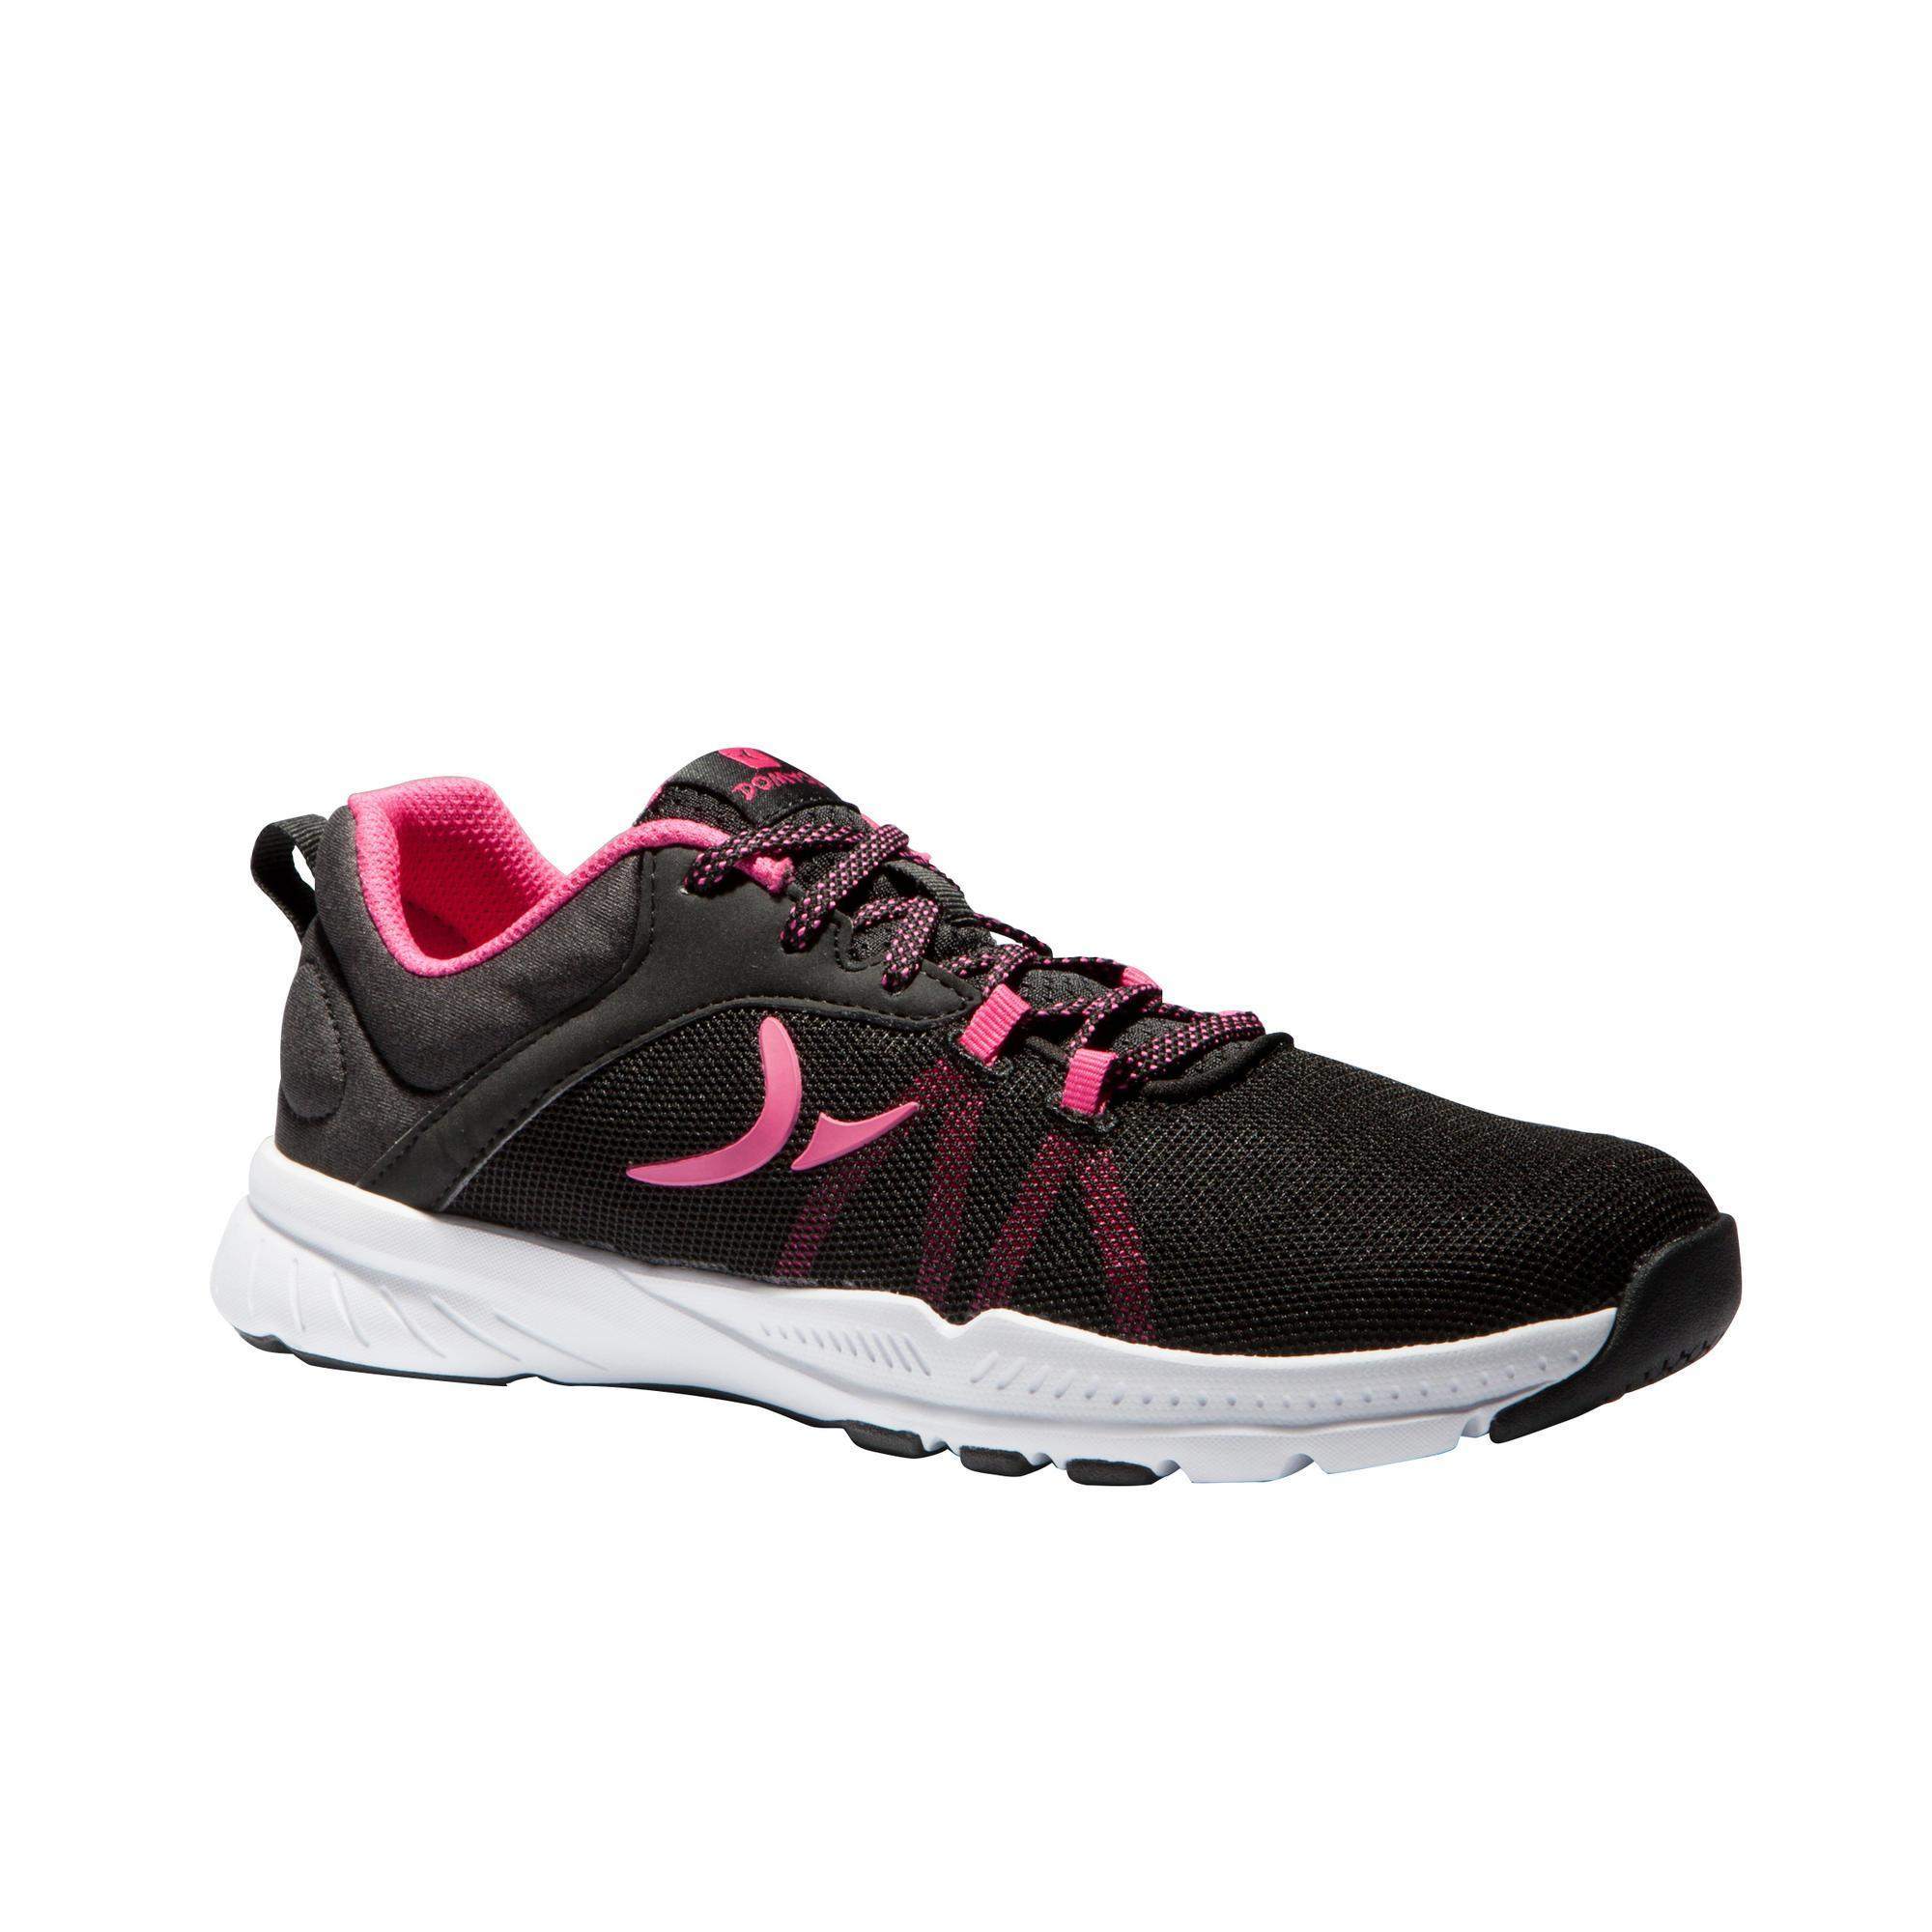 Chaussures cardio fitness training femme 100 noir et rose domyos